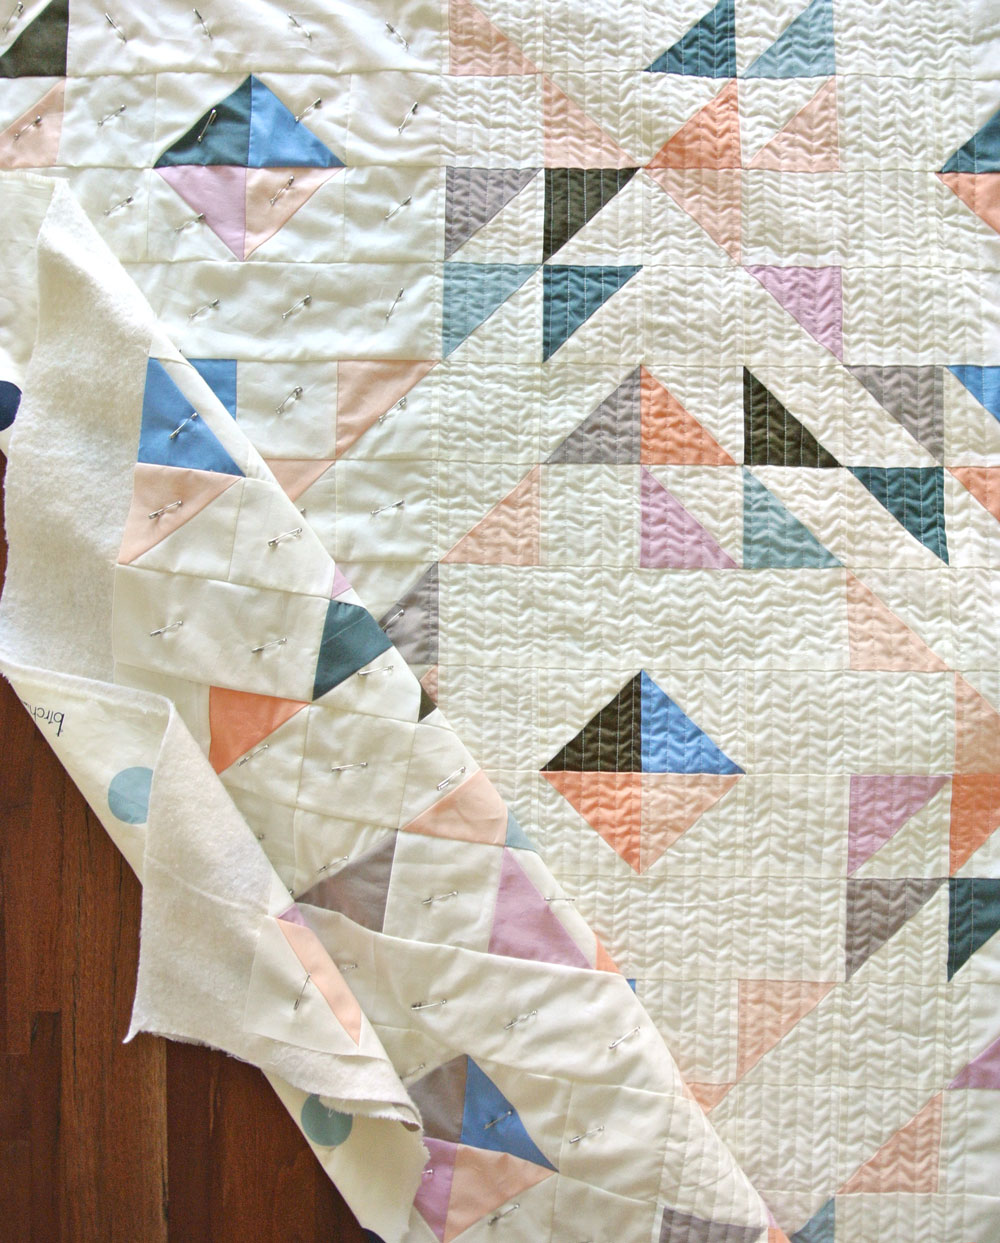 Learn the 6 simple steps to straight line quilting, or as some call it, matchstick quilting. This is a great beginner quilter tutorial! This is what happens when you don't quilt in the same direction – ugly tension waves in the fabric.